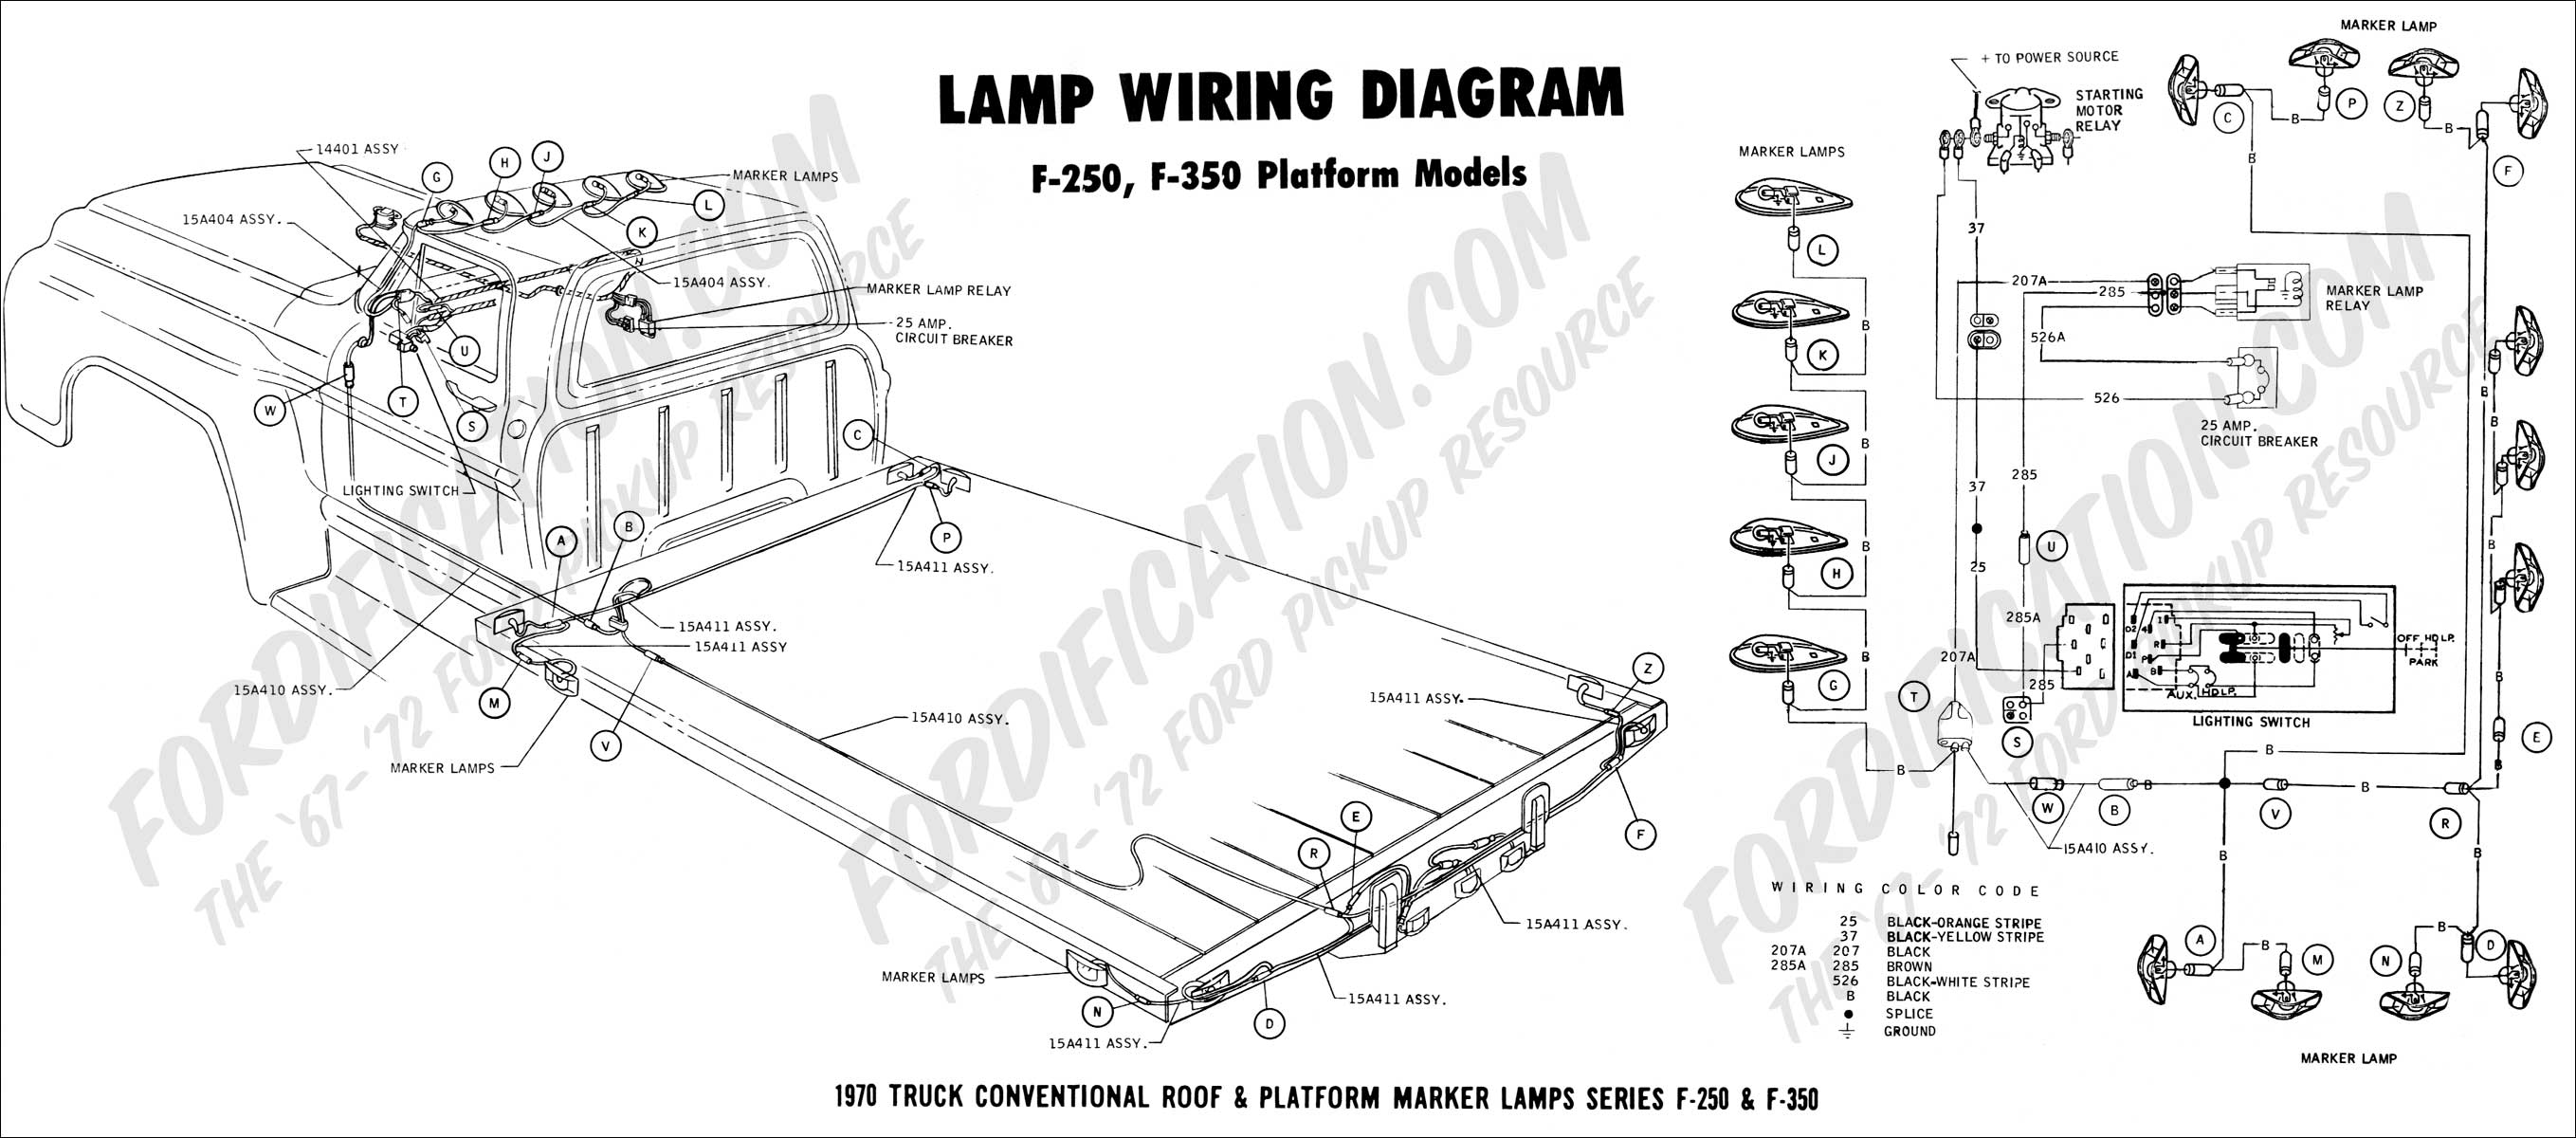 72 F250 Wiring Diagram. Engine. Wiring Diagram Images